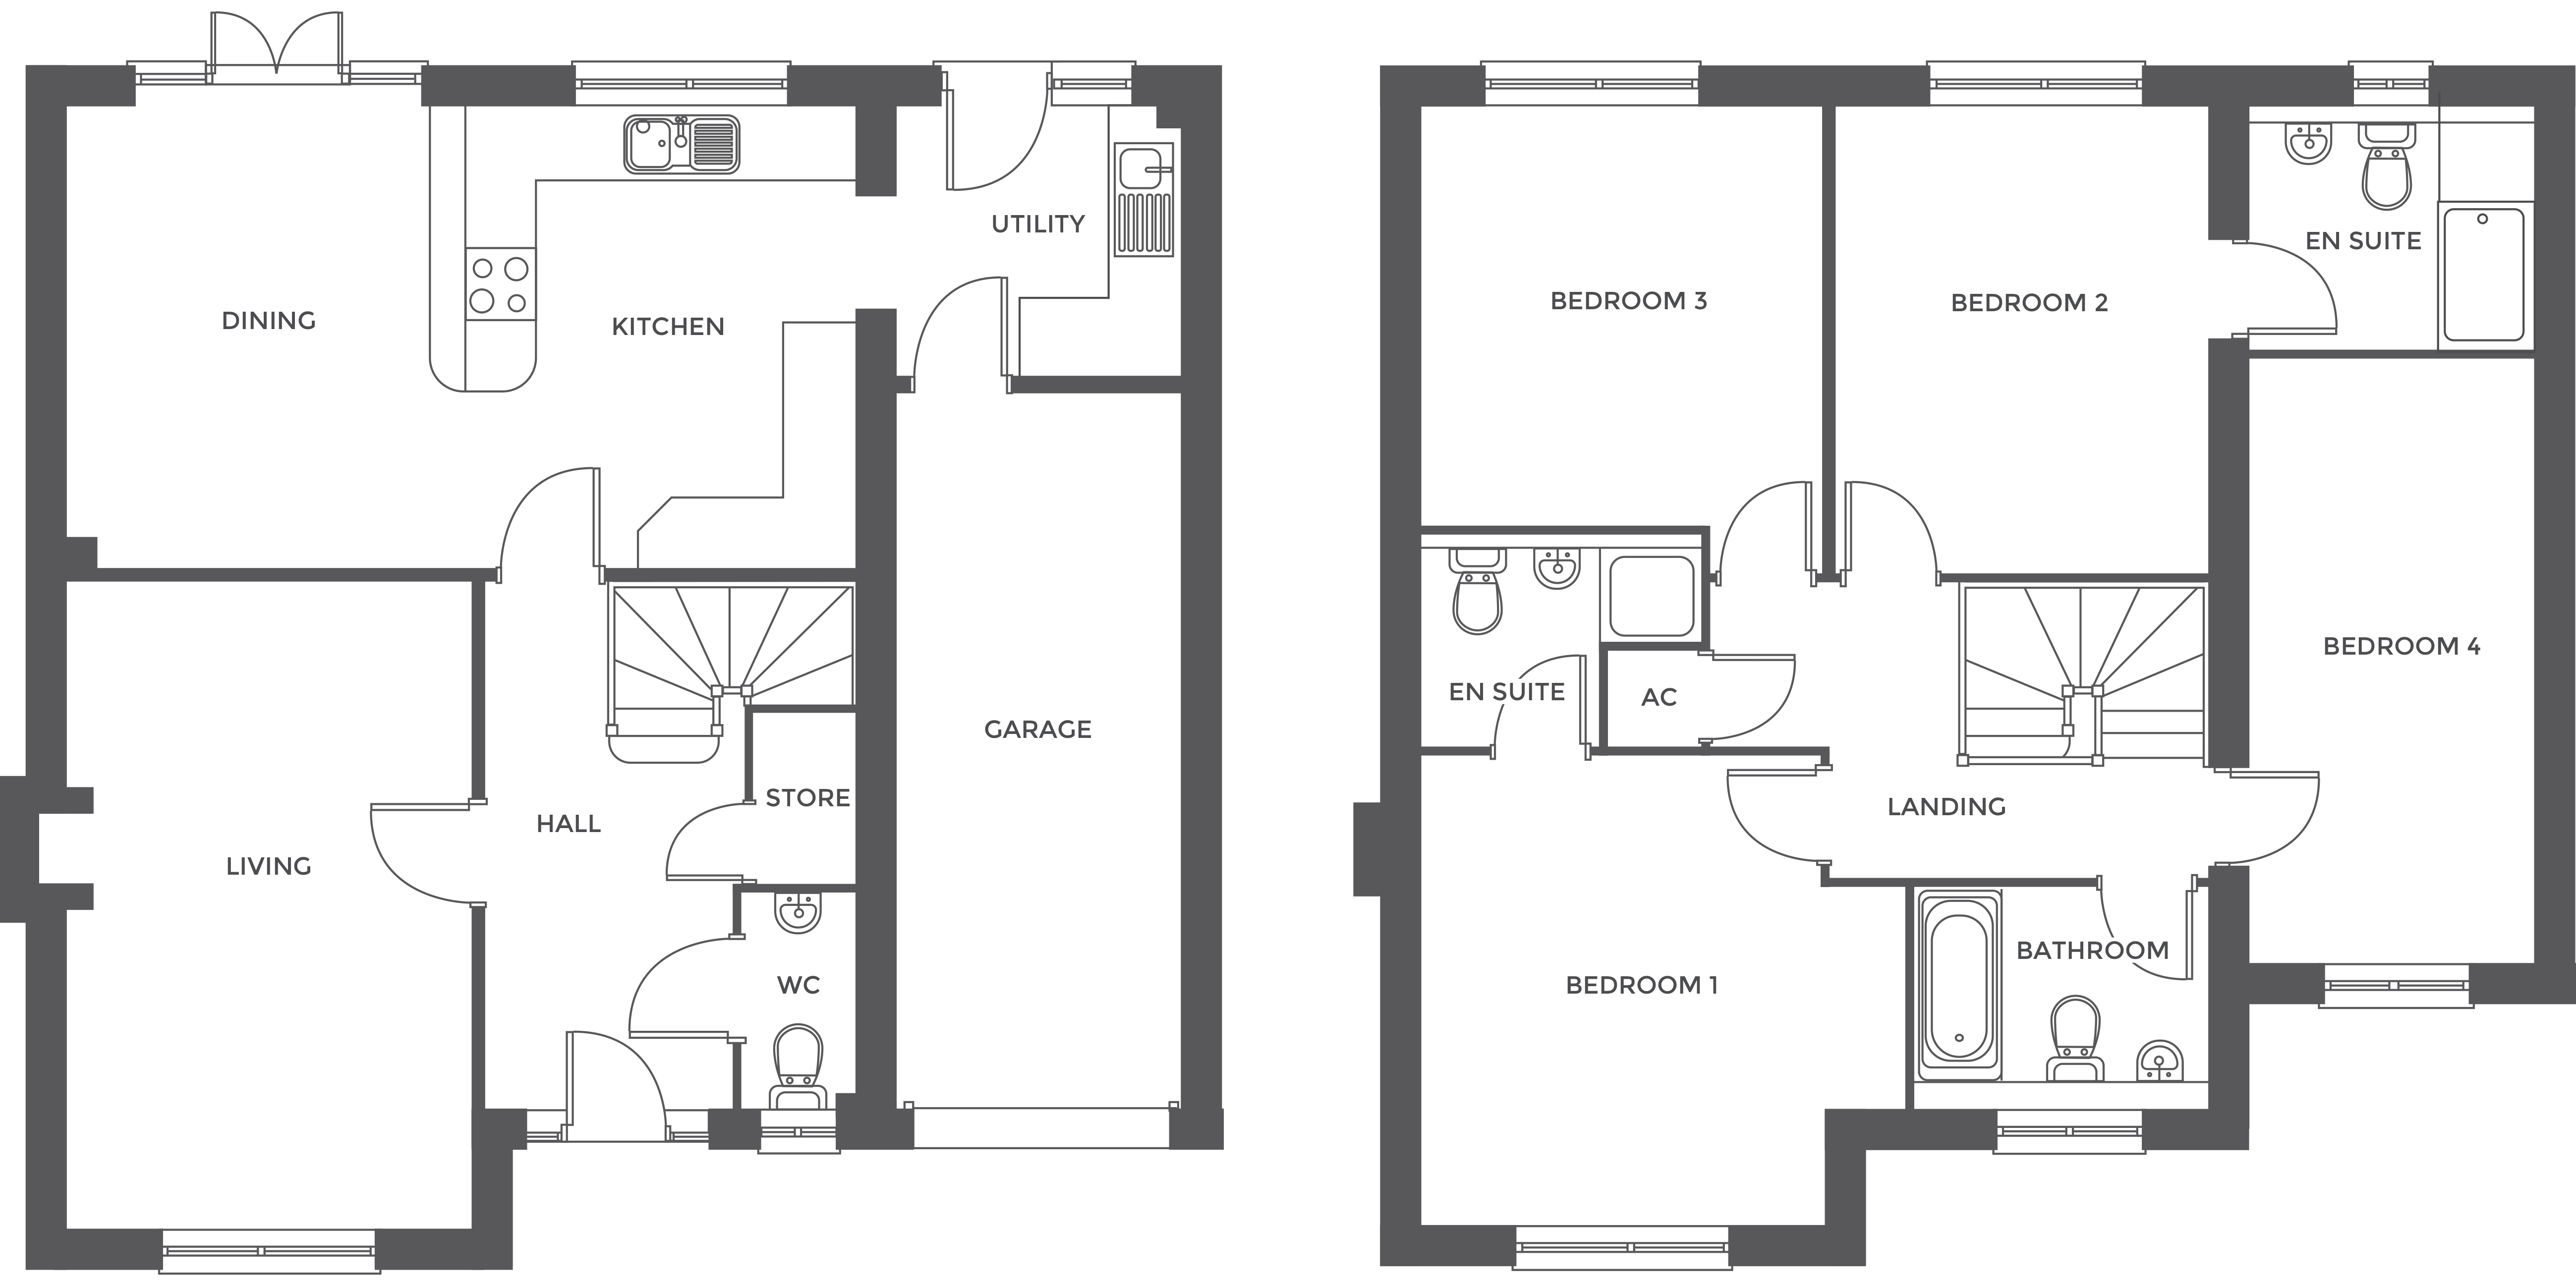 Walton Croft, Plot 5 floor plan